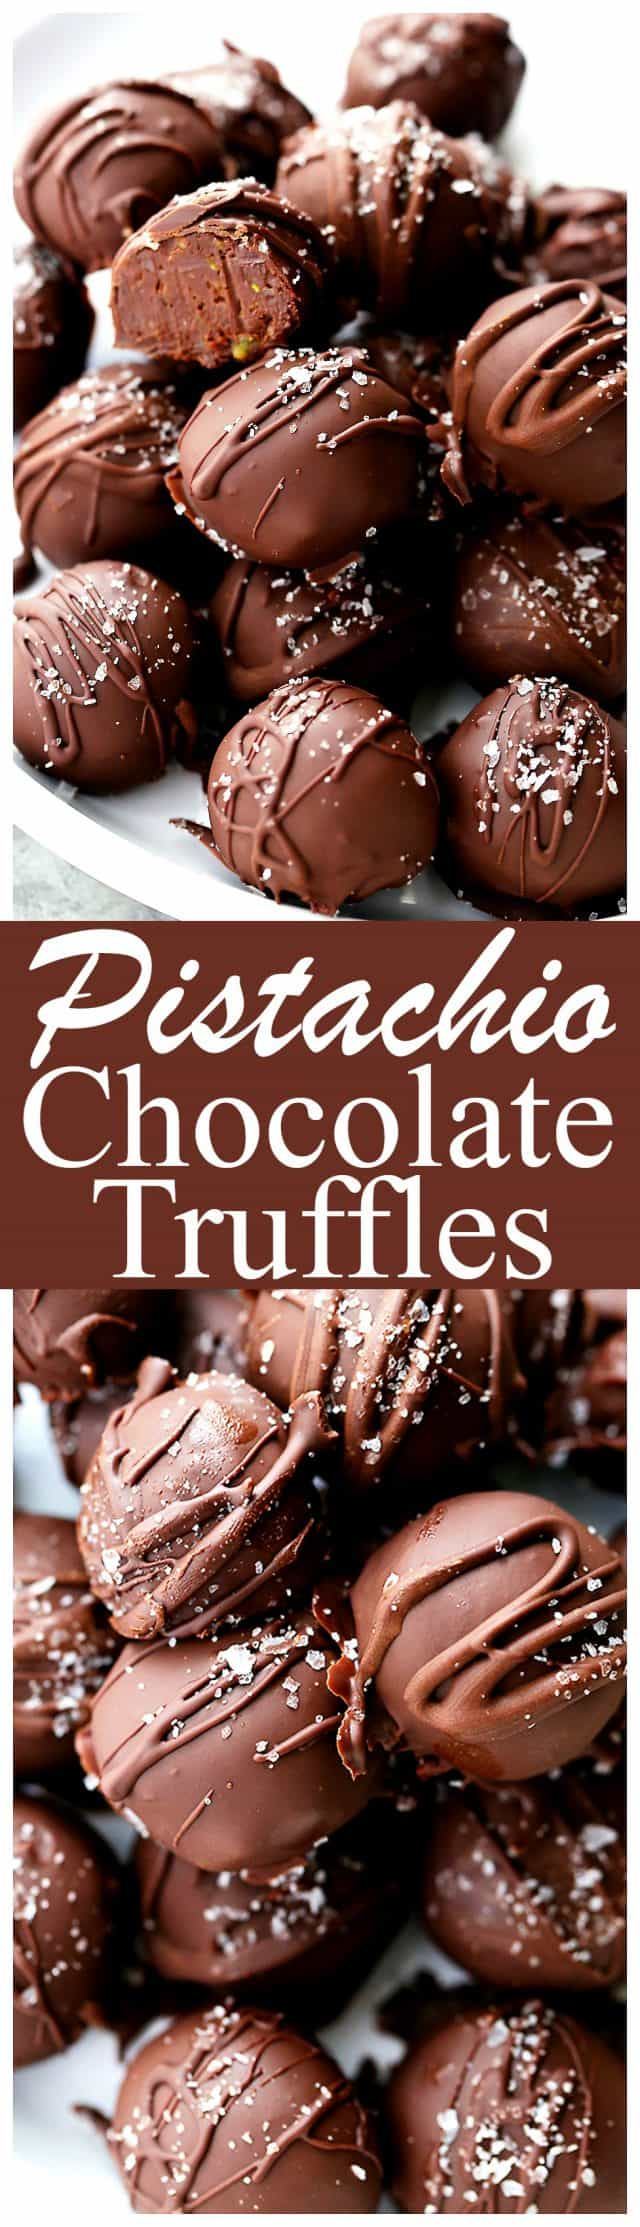 Salted Pistachio Dark Chocolate Truffles - Decadent chocolate truffles made with a rich dark chocolate and pistachio mixture, and sprinkled with sea salt.